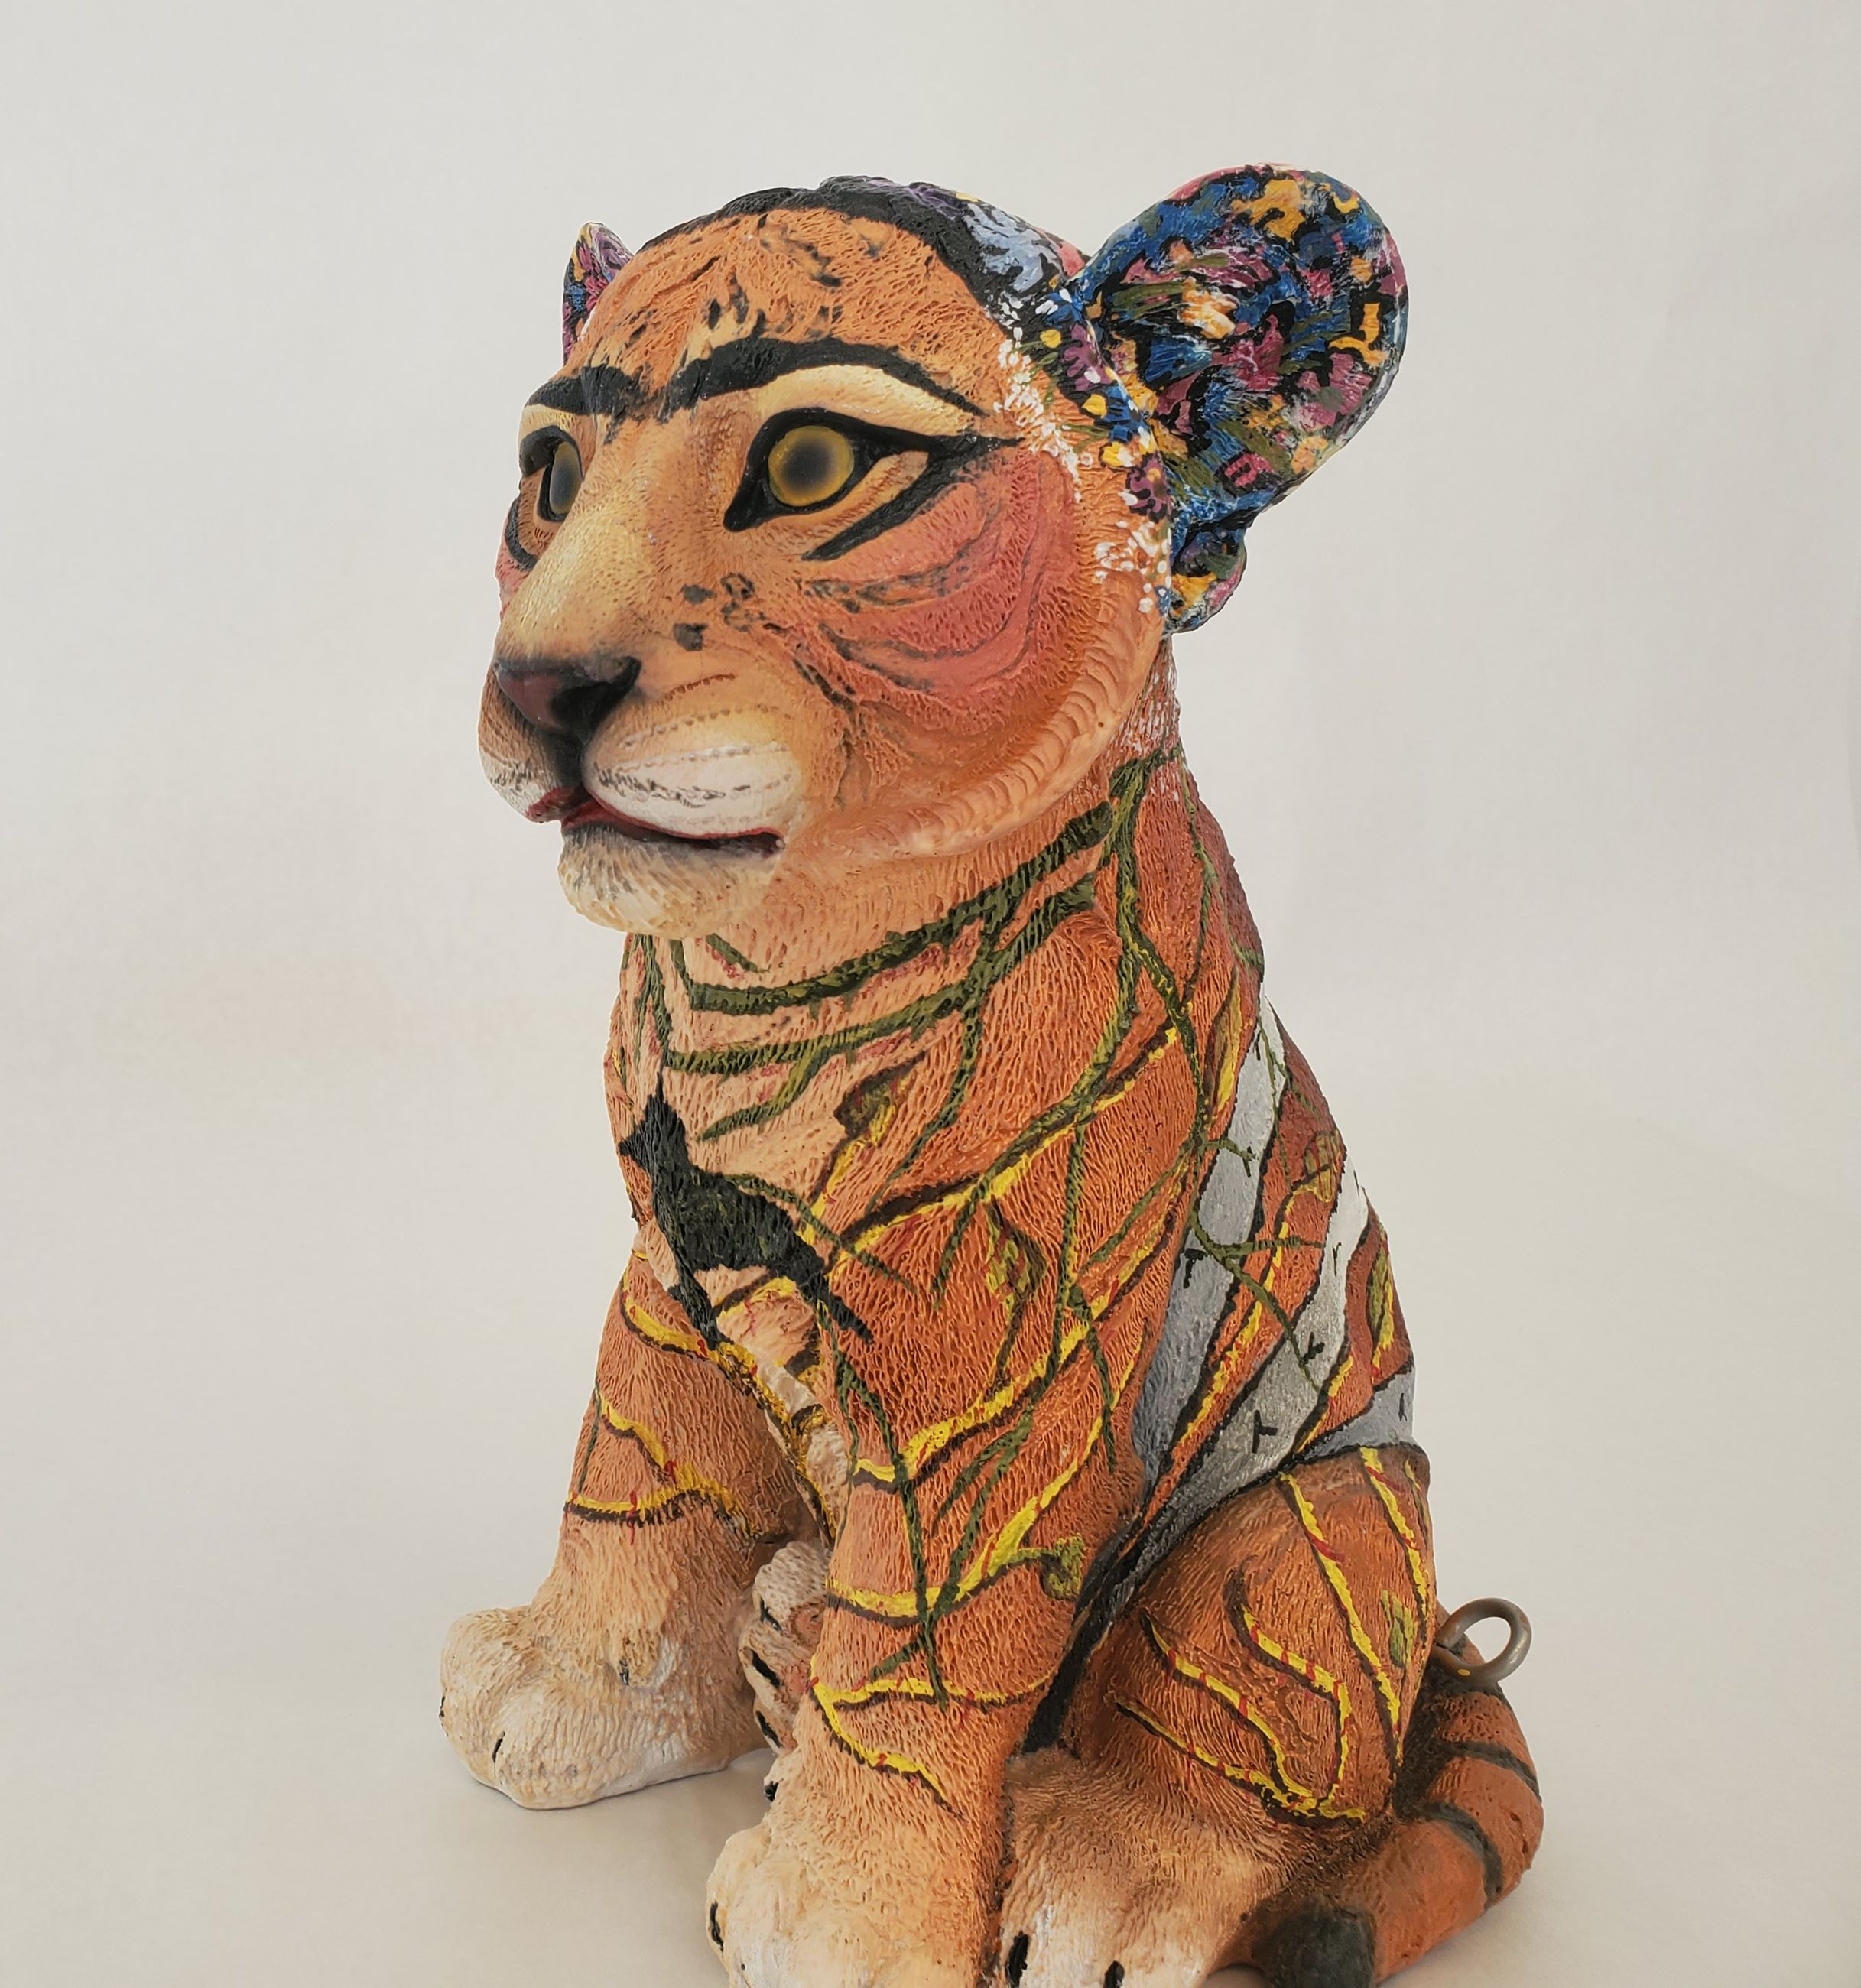 Tiger cub painted in the style of Frida Kahlo